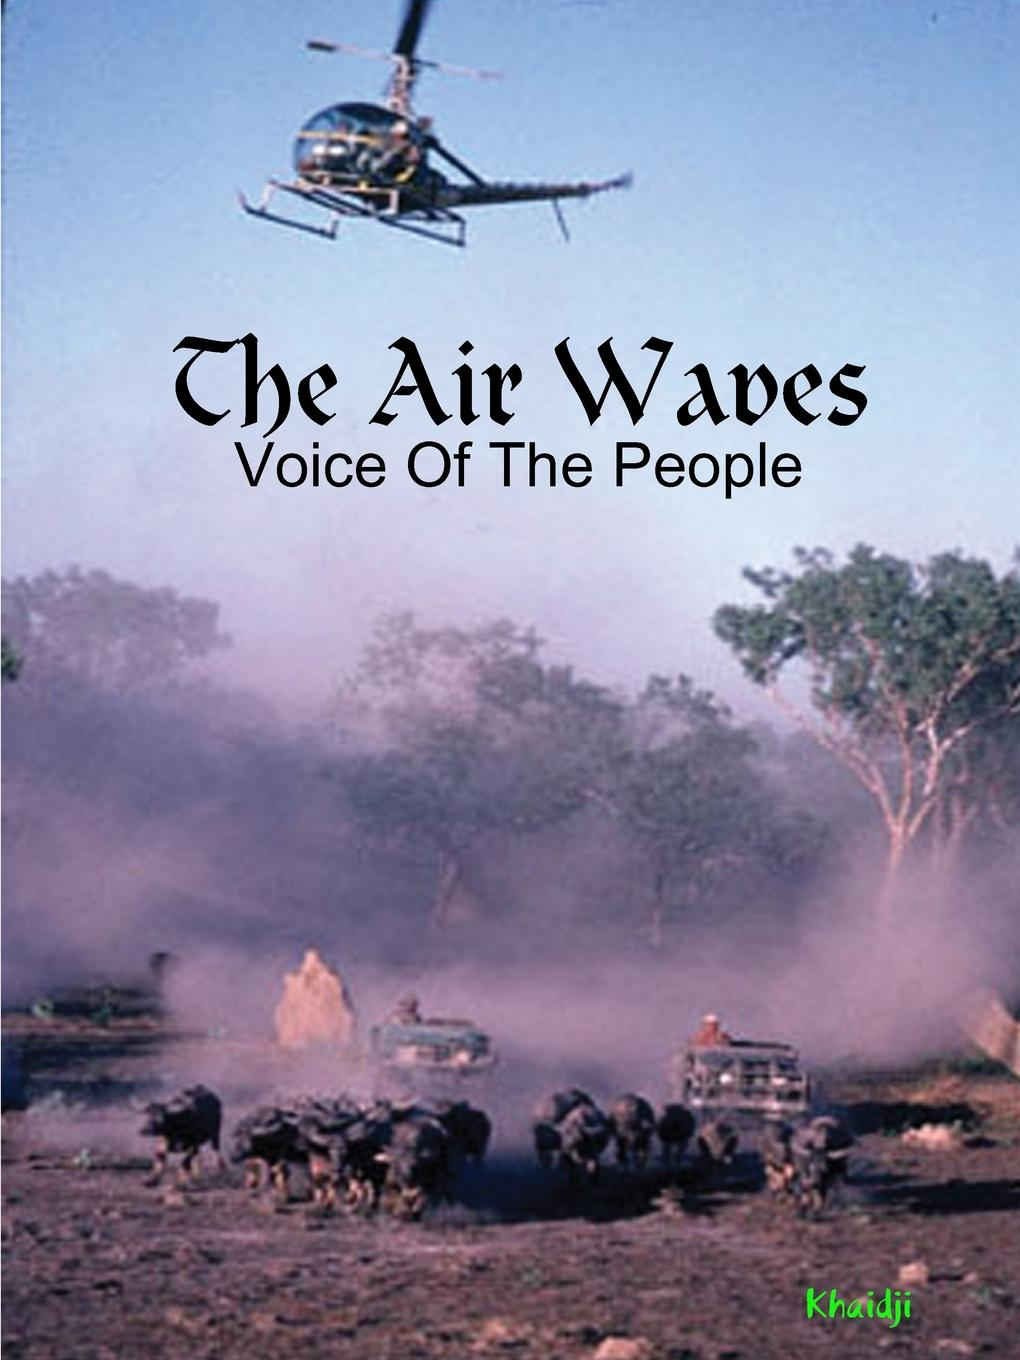 Khaidji The Air Waves